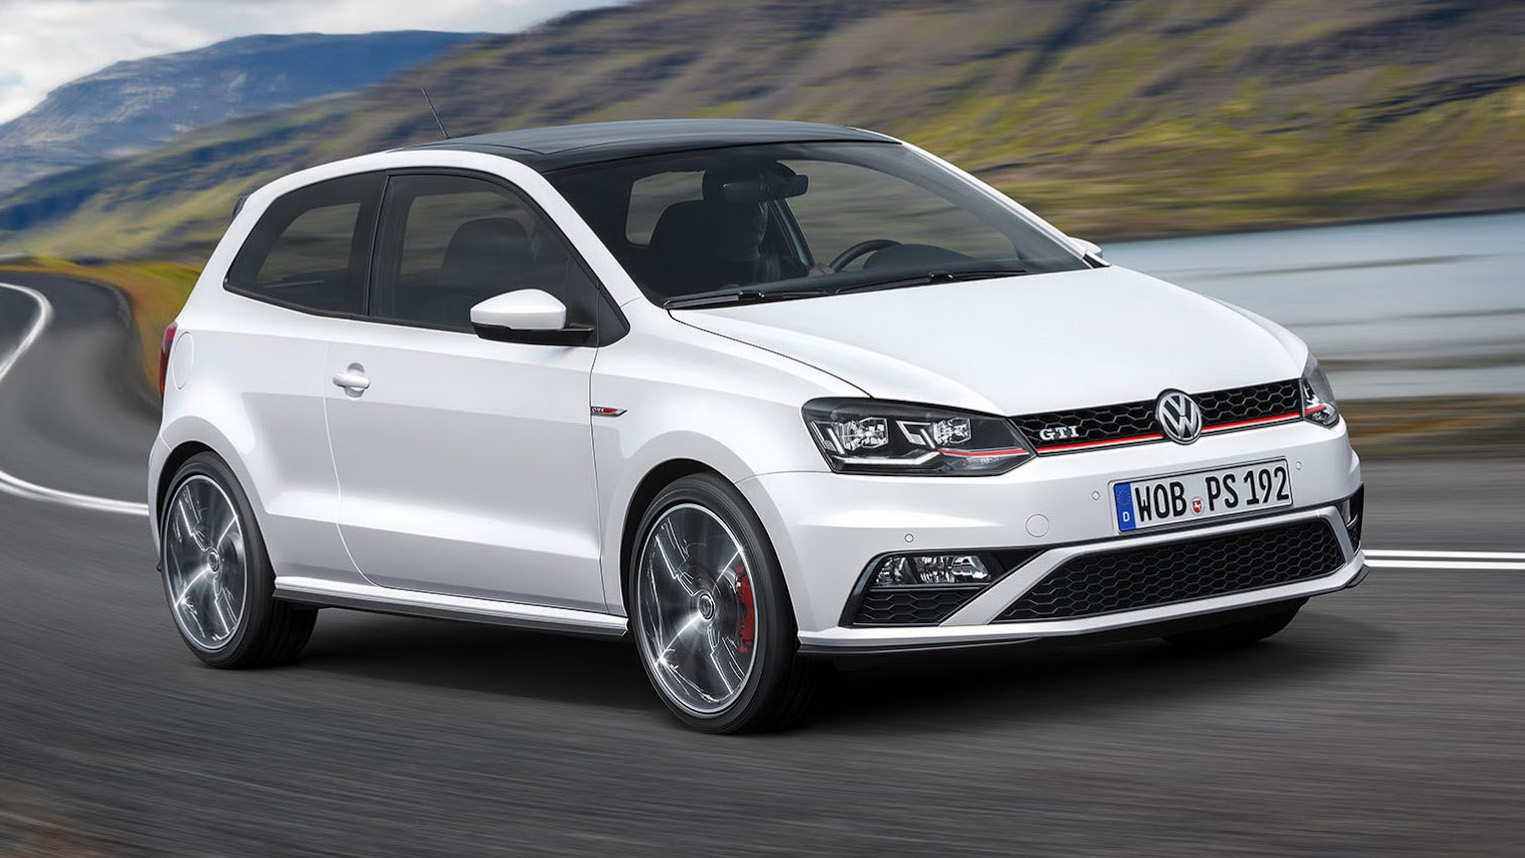 volkswagen polo gti facelift gets upgraded to 1 8 tsi. Black Bedroom Furniture Sets. Home Design Ideas